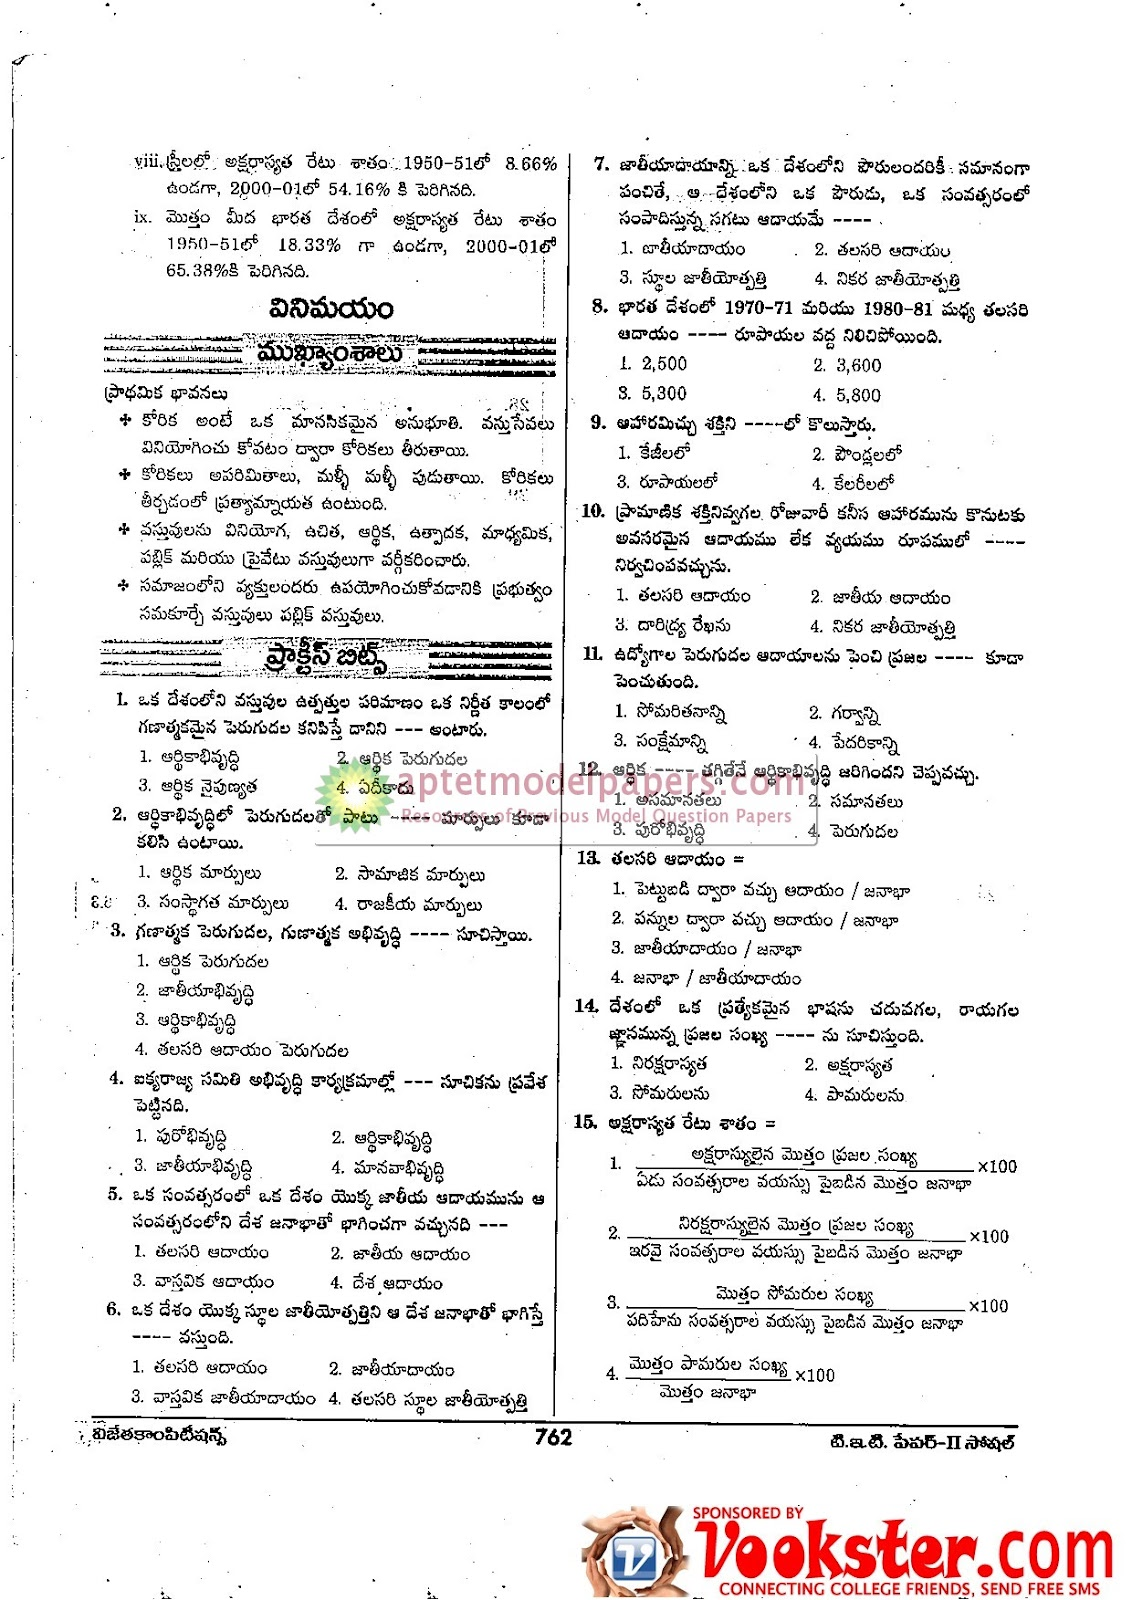 APTET Social Model Papers Syllabus 2010-2011 Pages of 171-176